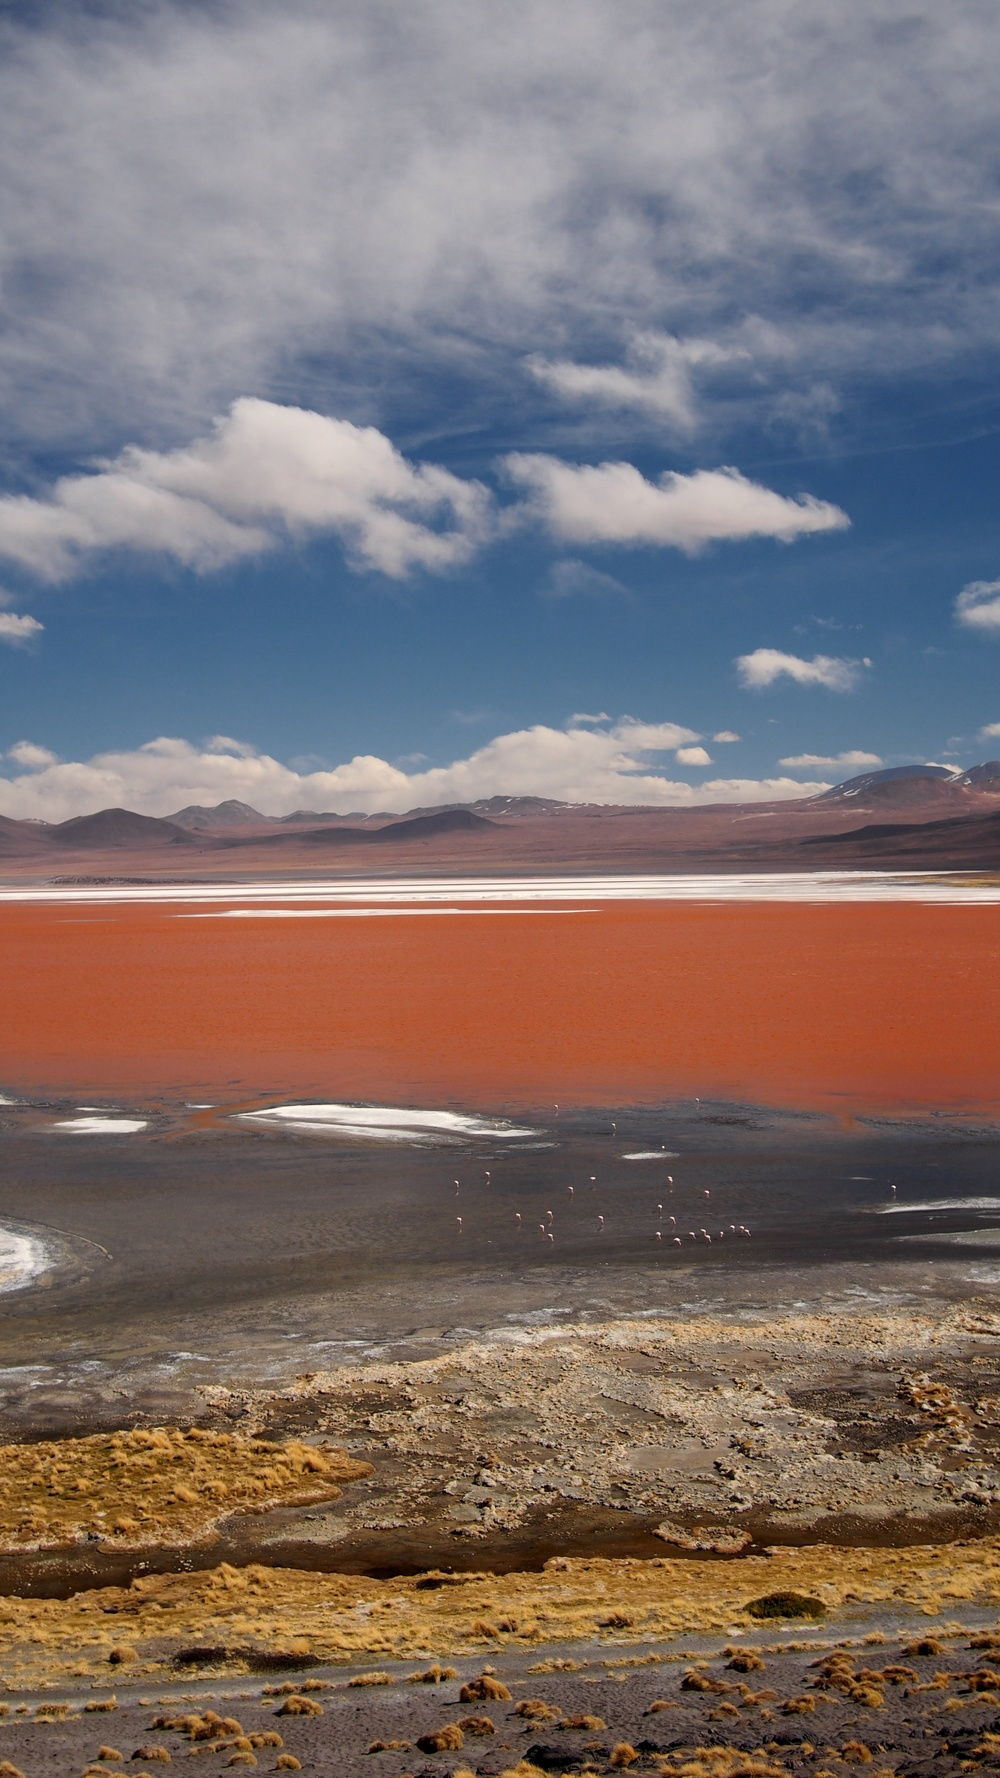 The Laguna Colorada is the main nesting site of the three species of Andean flamingos: Chilean Flamingo, Andean Flamingo and James's Flamingo